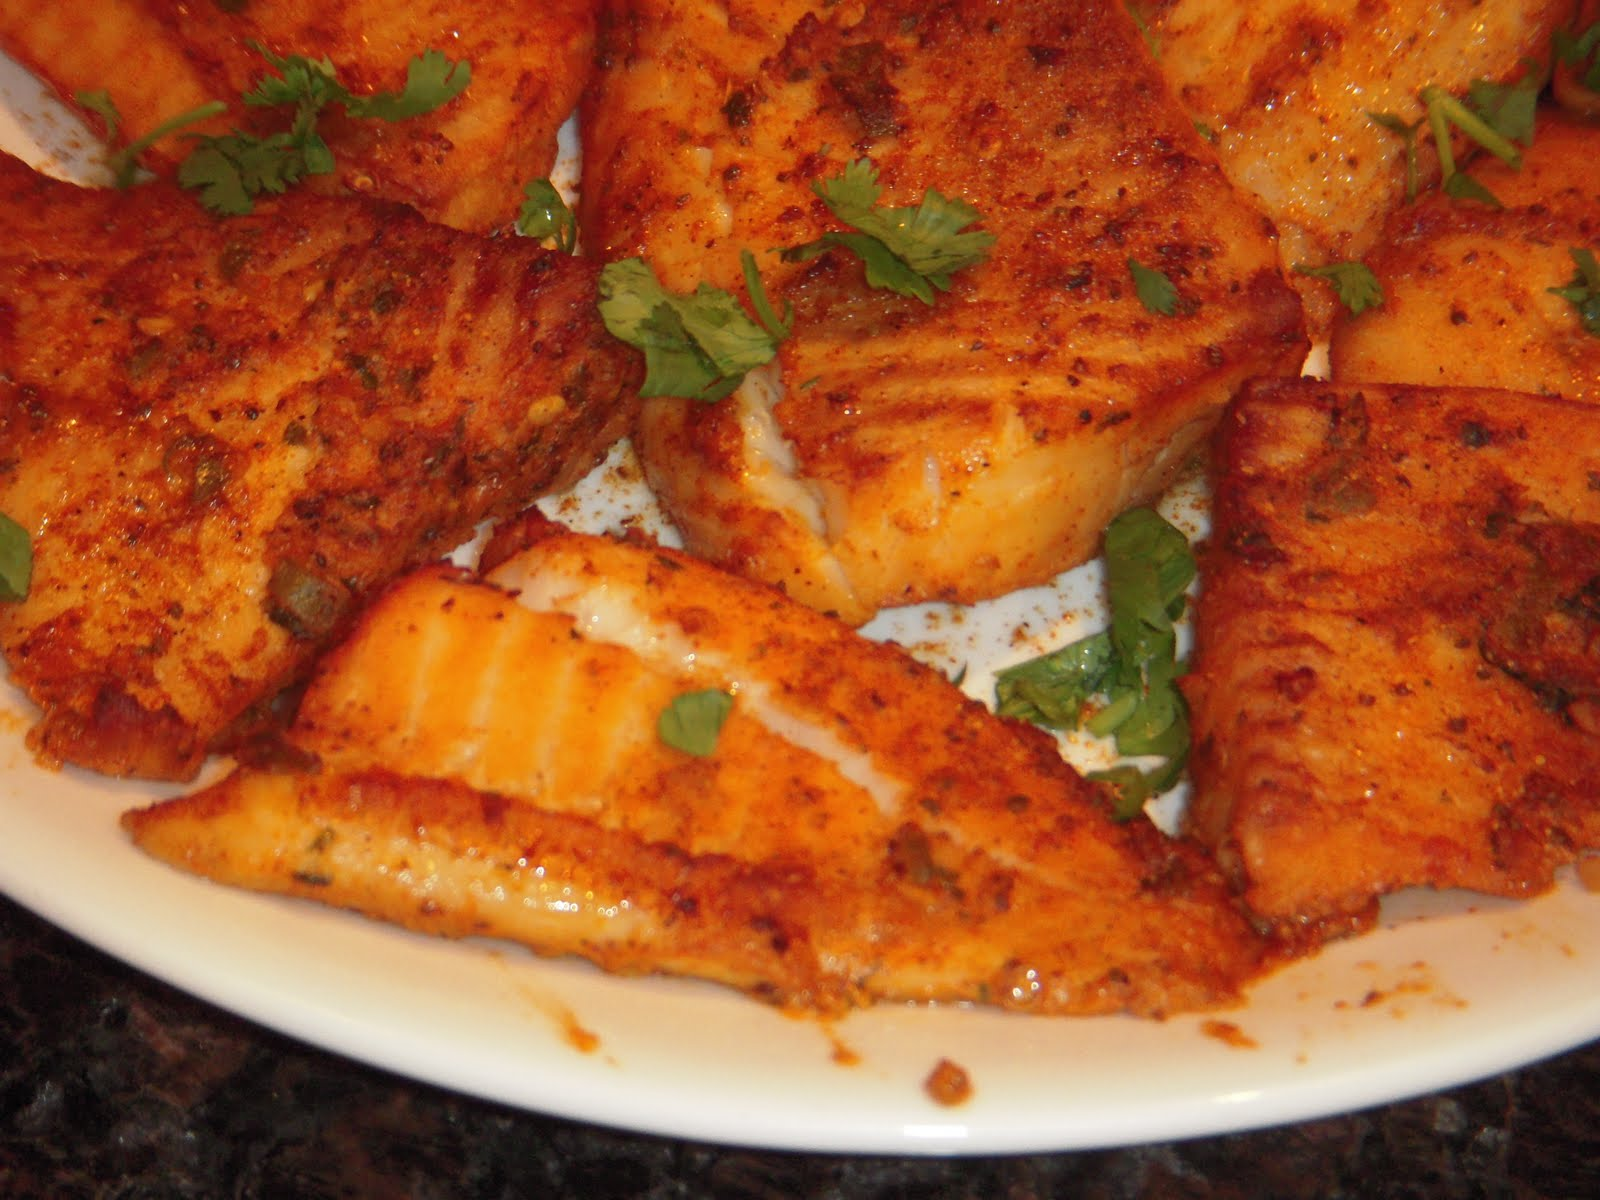 to cook the fish on stovetop broiled tilapia parmesan whole tilapia 1 ...